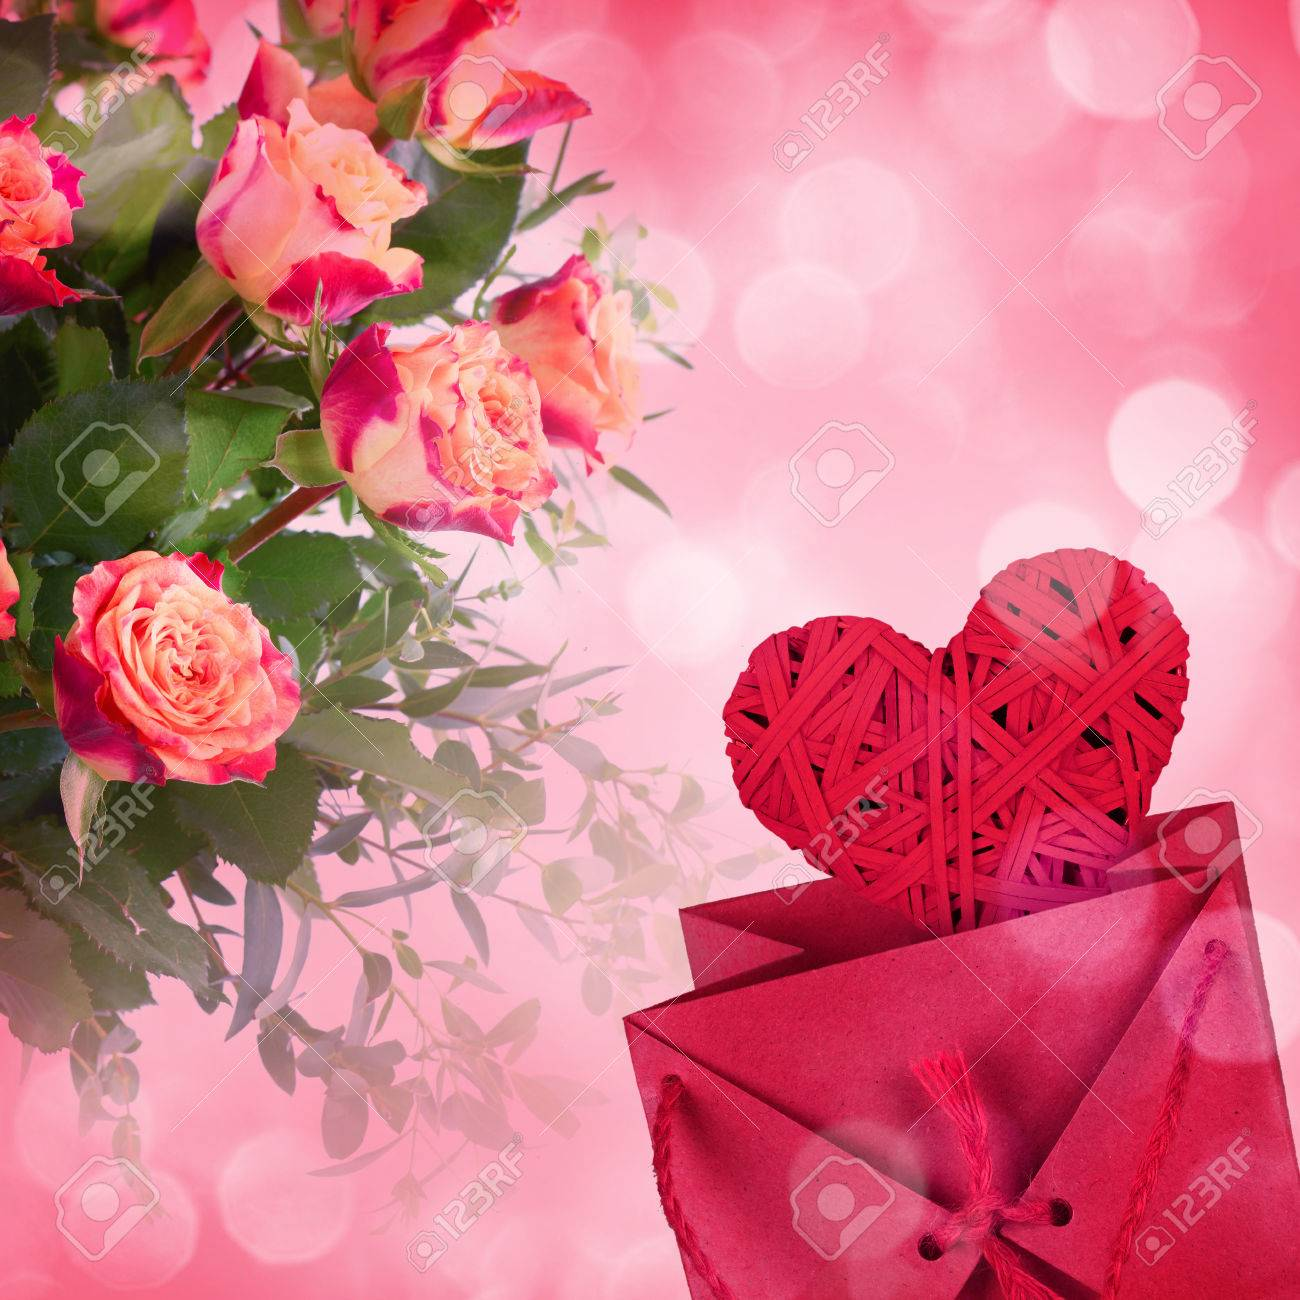 Bouquet of roses and gift box on romantic background - 43347602